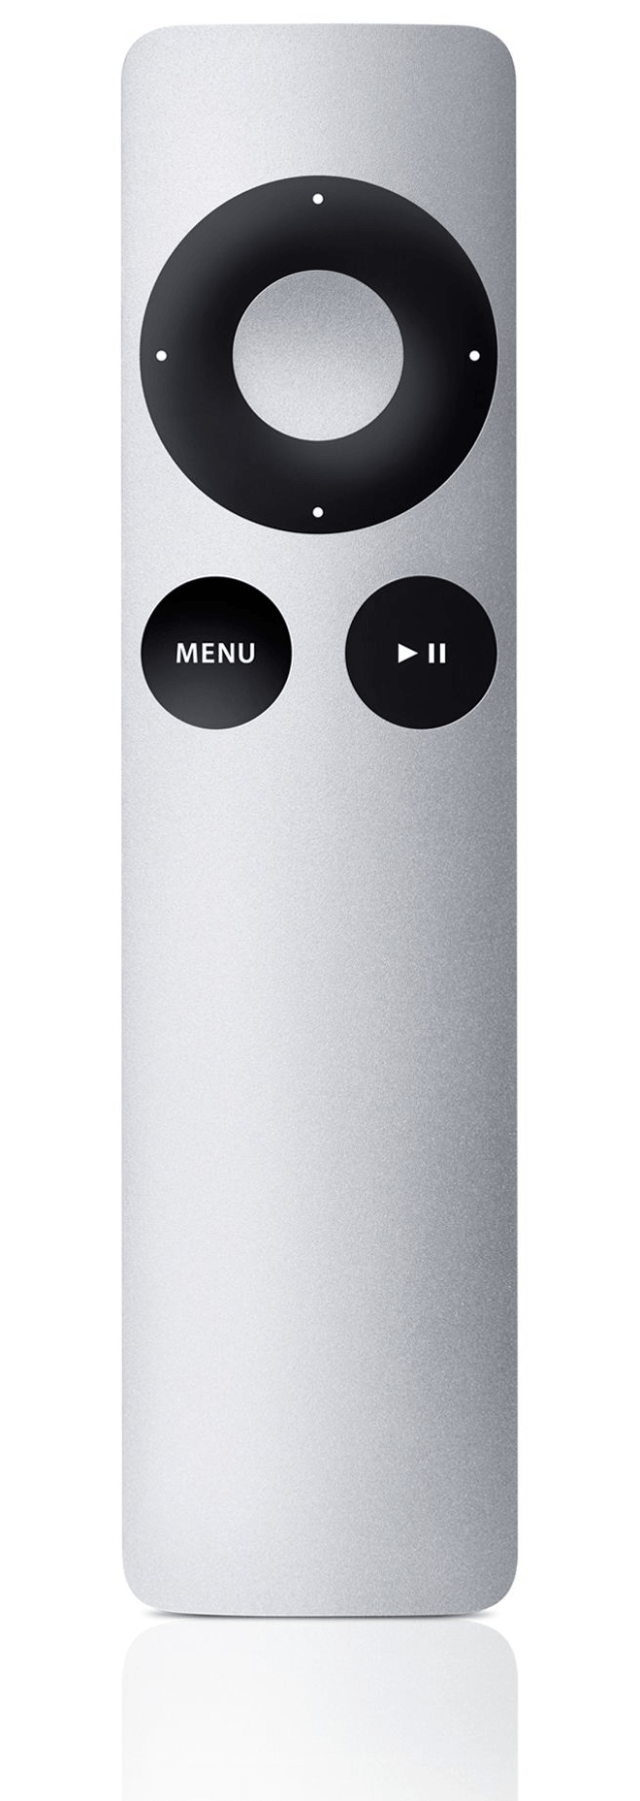 The Apple Remote for Apple TV (2nd and 3rd generation)